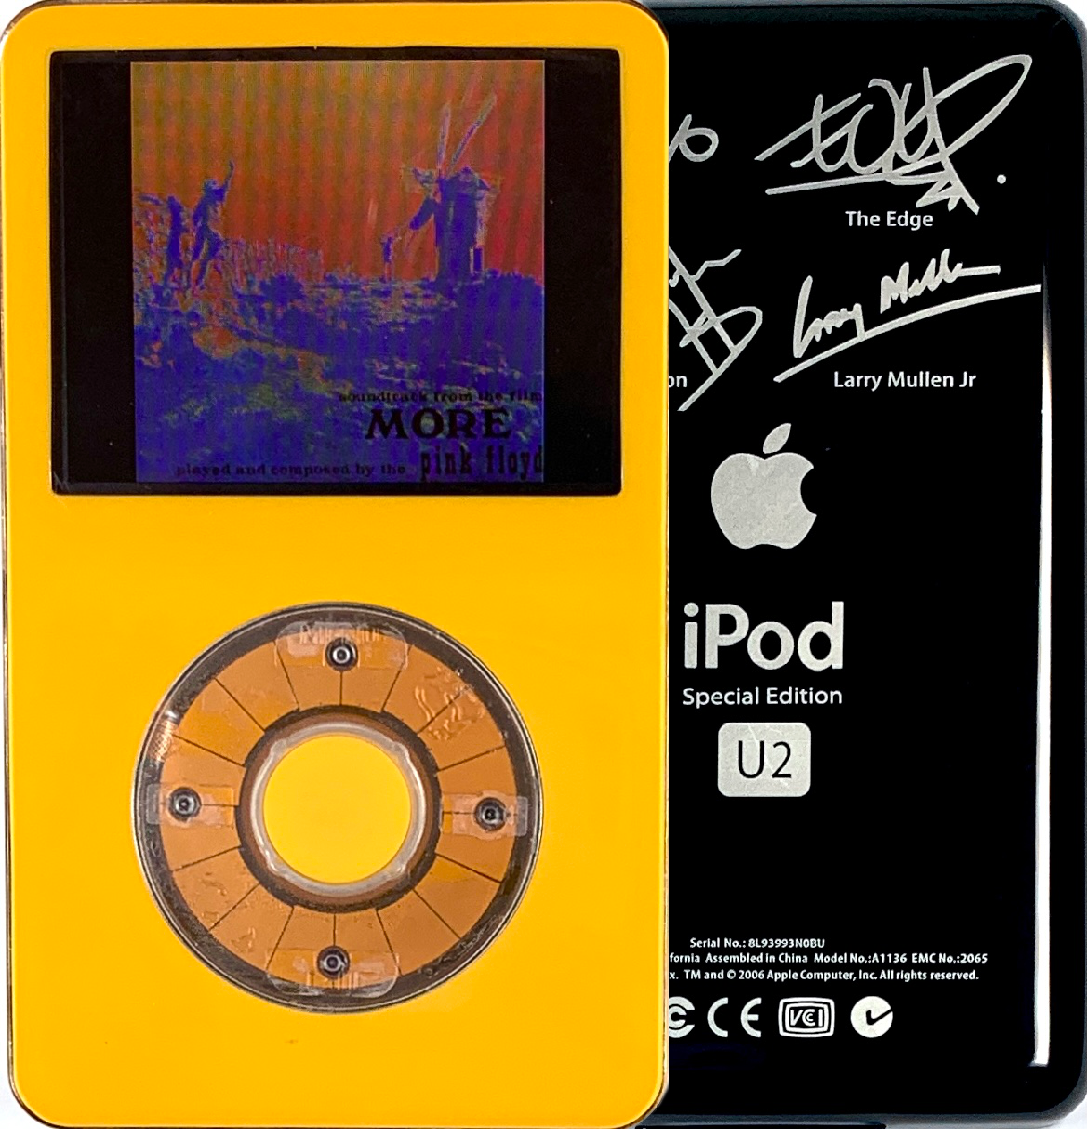 New Apple iPod Video Classic 5th & 5.5 Enhanced Yellow / Transparent / Yellow (U2 Special Edition Black)